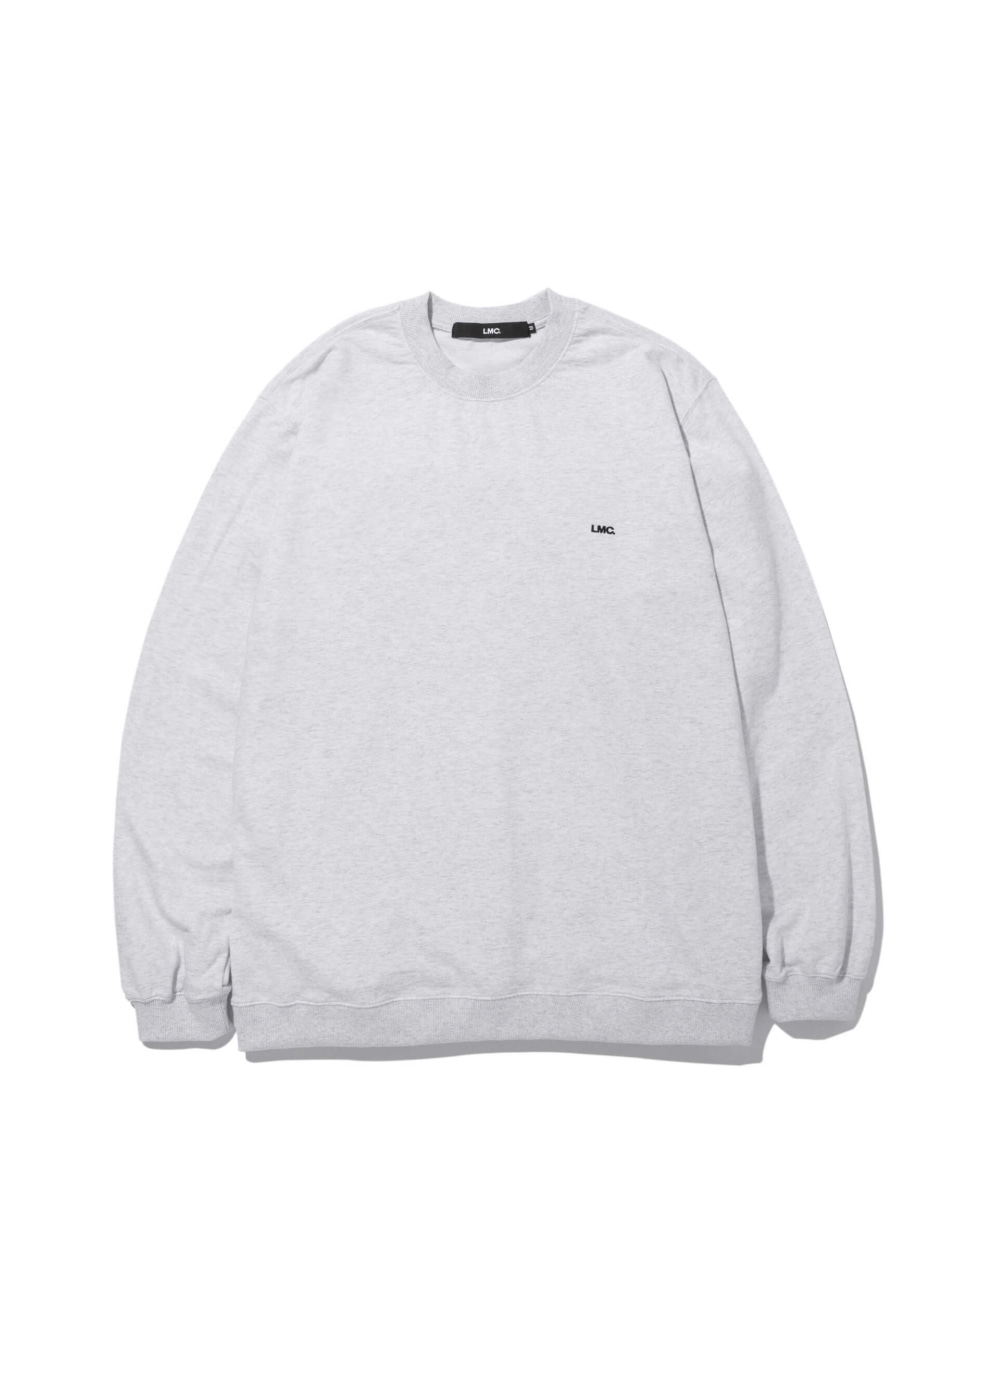 LMC STRAIGHT RIB SWEAT TEE lt. heather gray